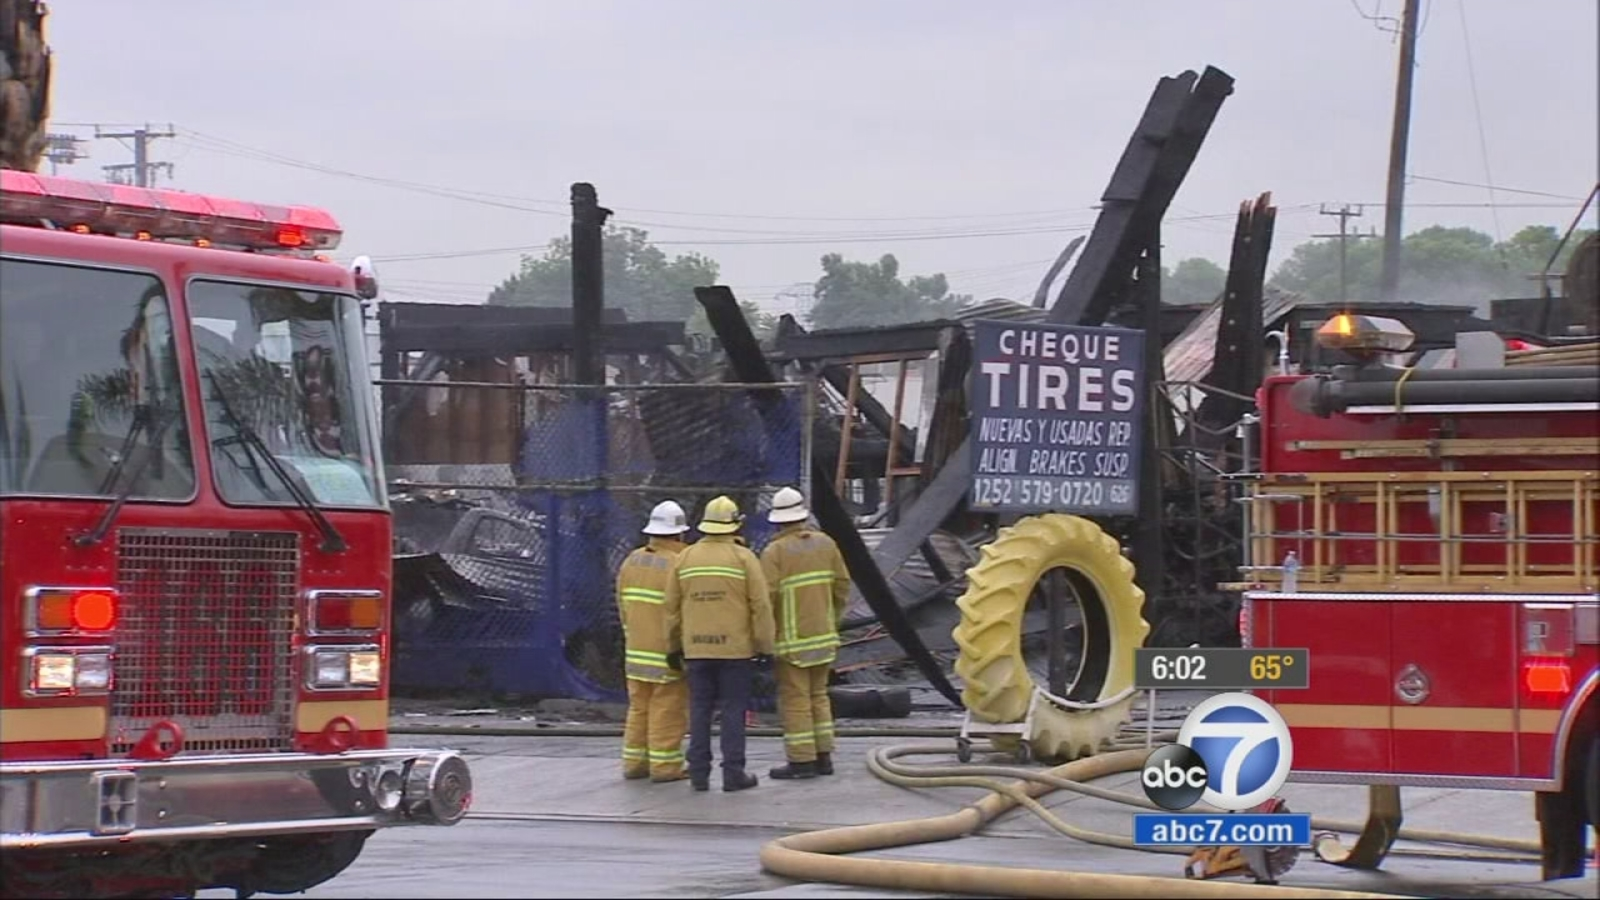 3 Burned Bos Found In South El Monte Tire Fire